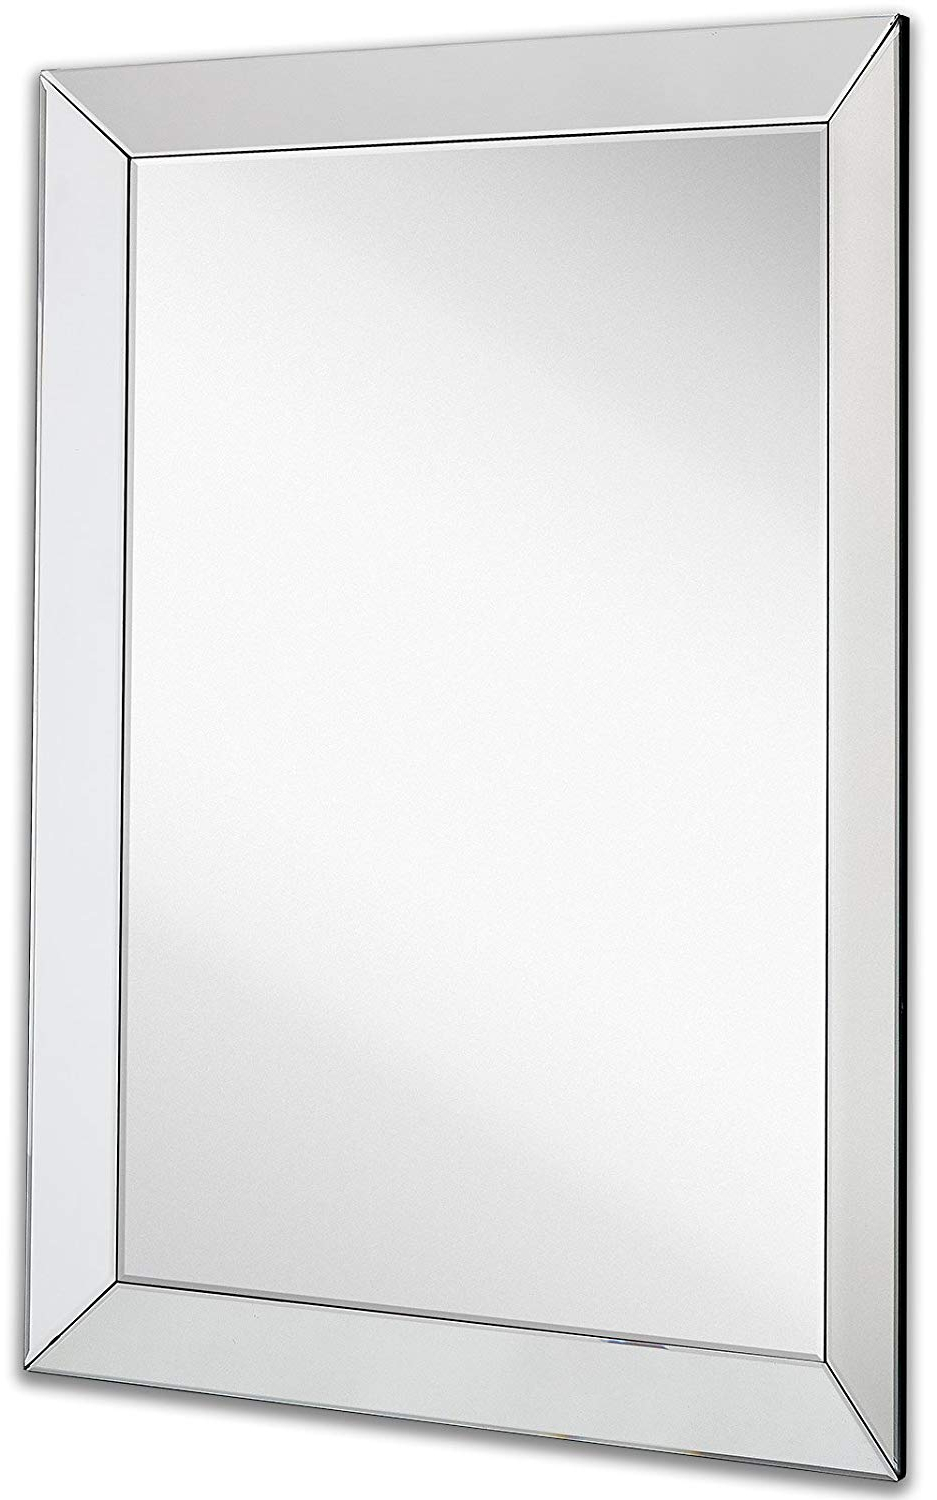 2019 Angled Wall Mirrors With Large Framed Wall Mirror With 3 Inch Angled Beveled Mirror Frame (Gallery 1 of 20)